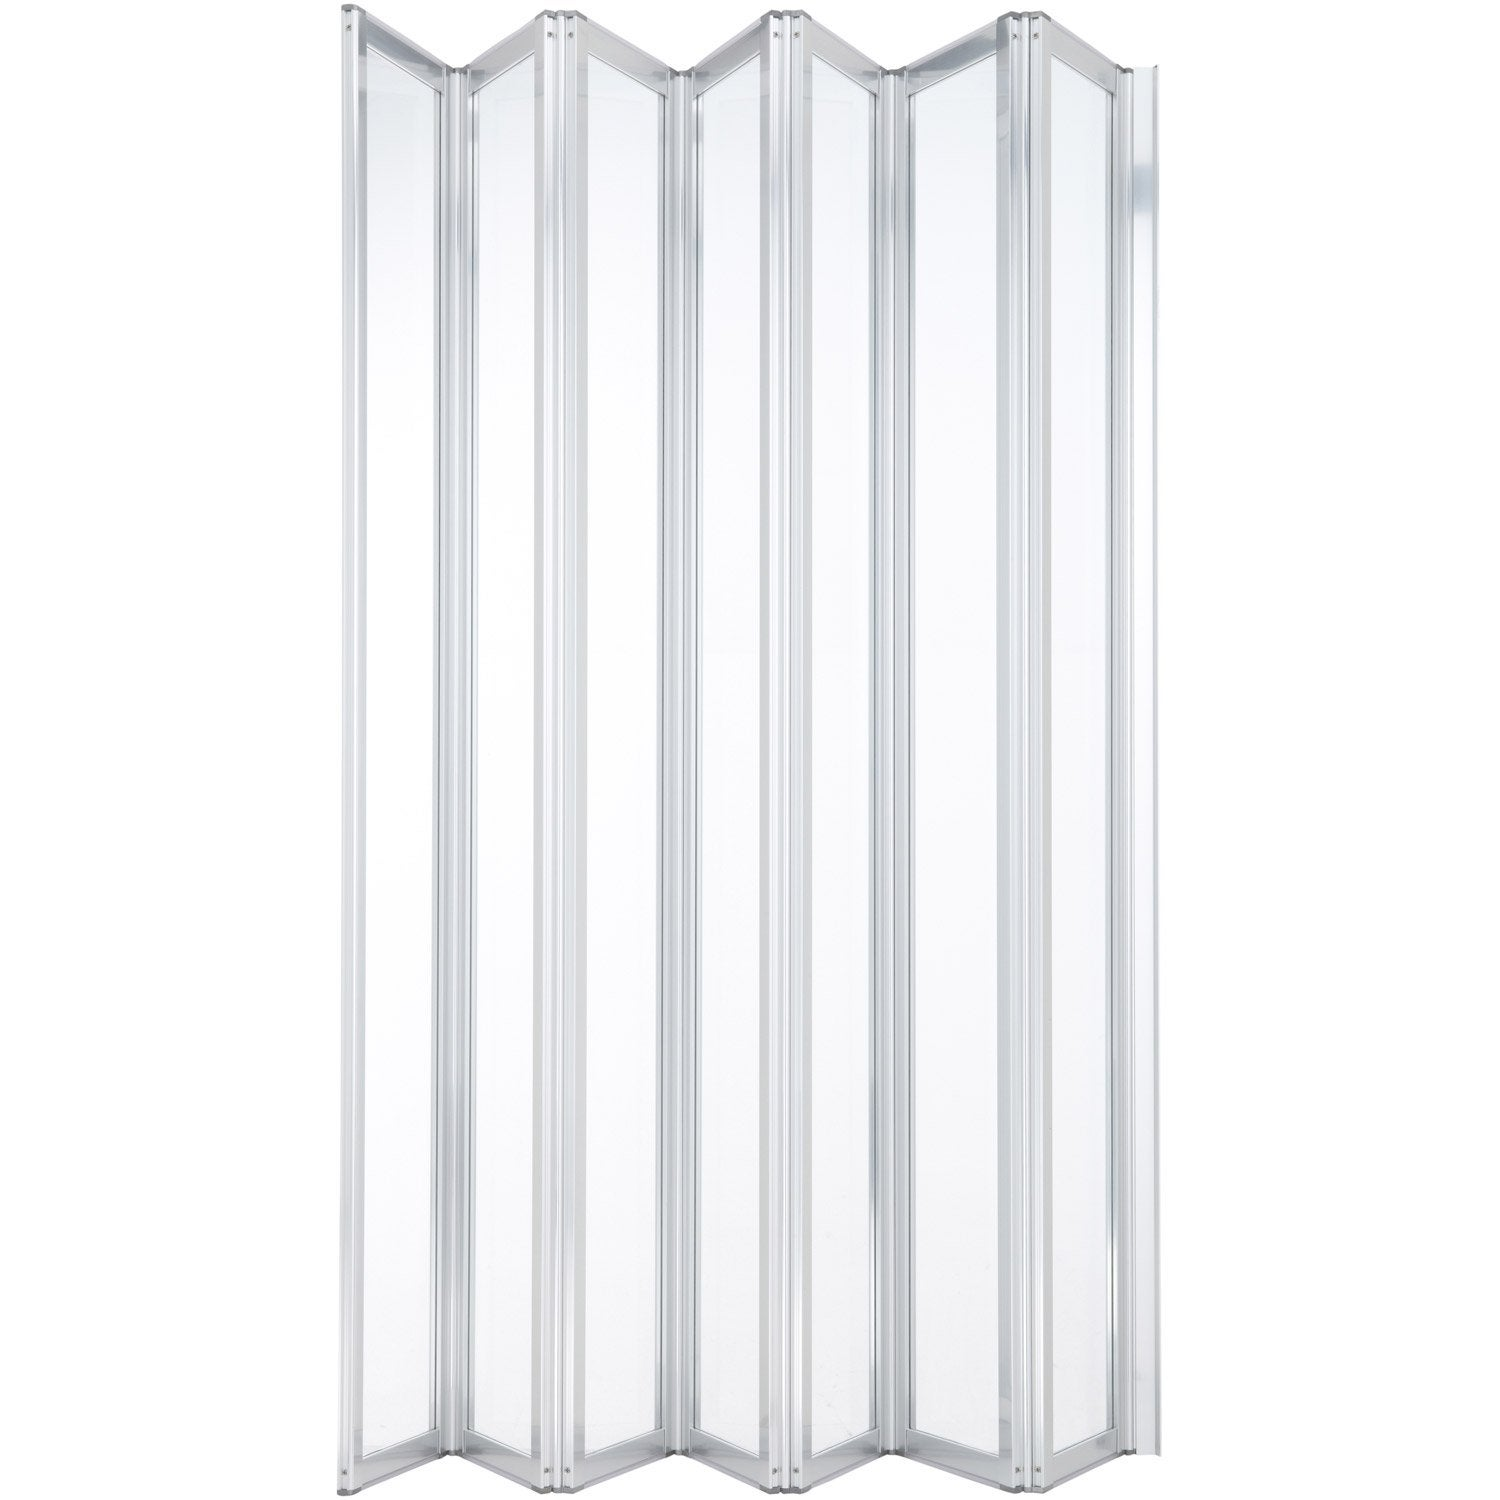 Pare baignoire 7 volets verre de s curit 3 mm transparent for Porte accordeon pour douche